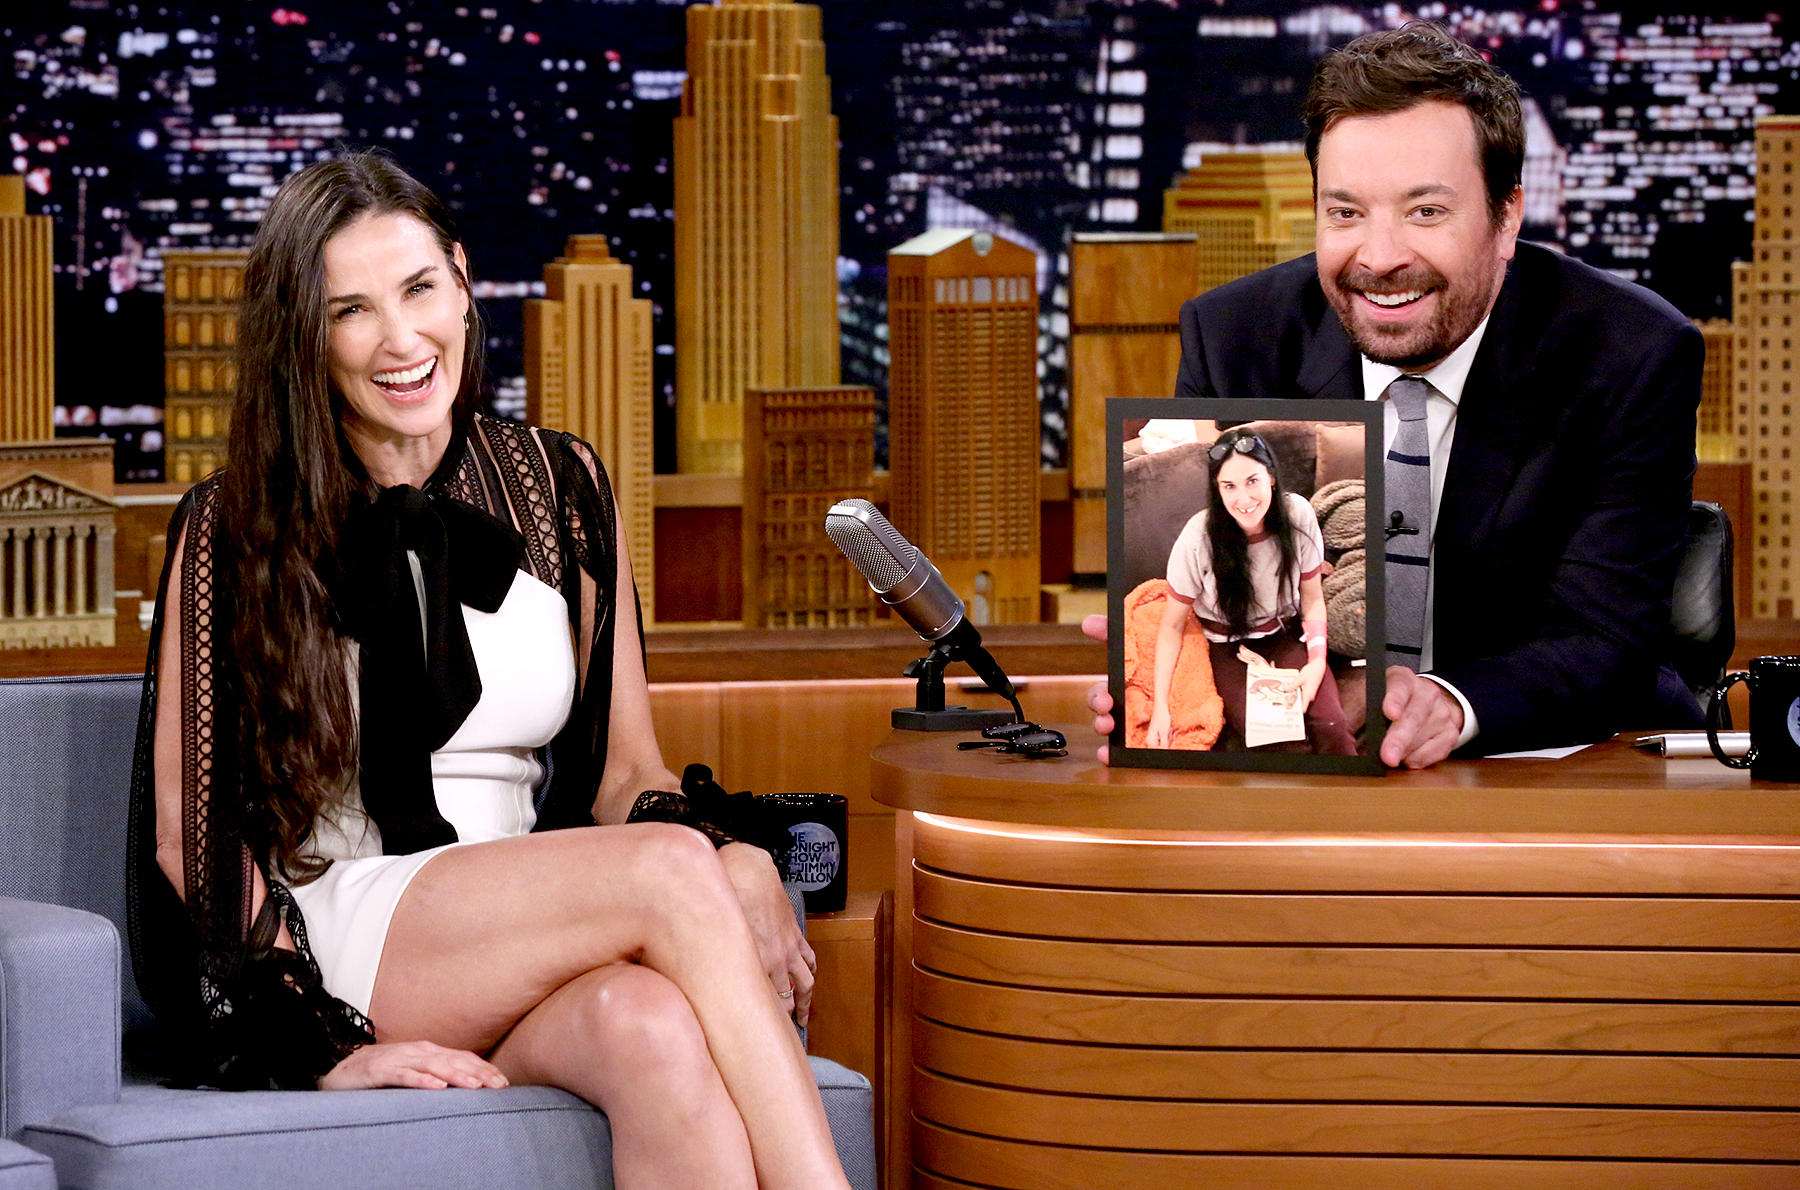 Demi Moore during an interview with host Jimmy Fallon on June 12, 2017.